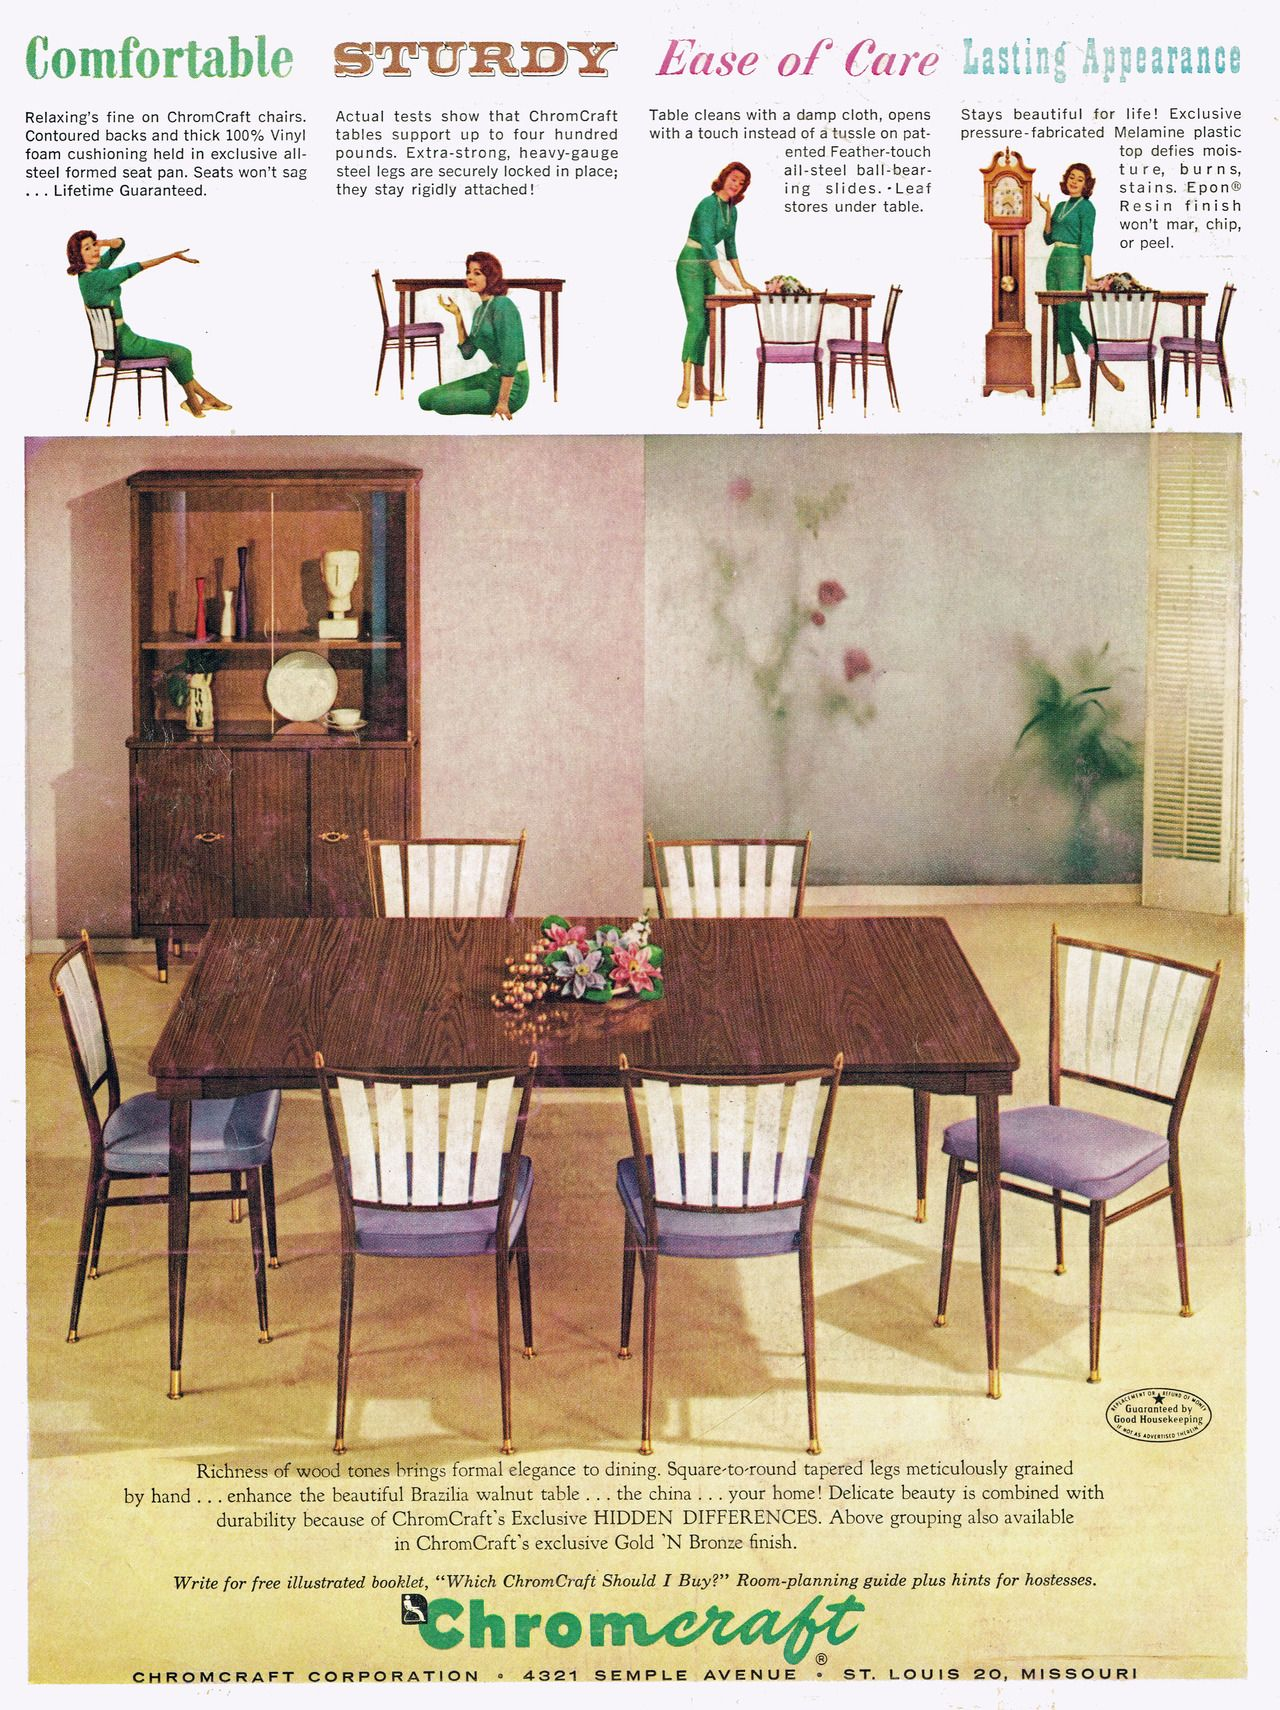 Chromcraft Furniture Kitchen Chair With Wheels Chromcraft Baroness Dining Furniture 1956 Ad Picture Chromcraft